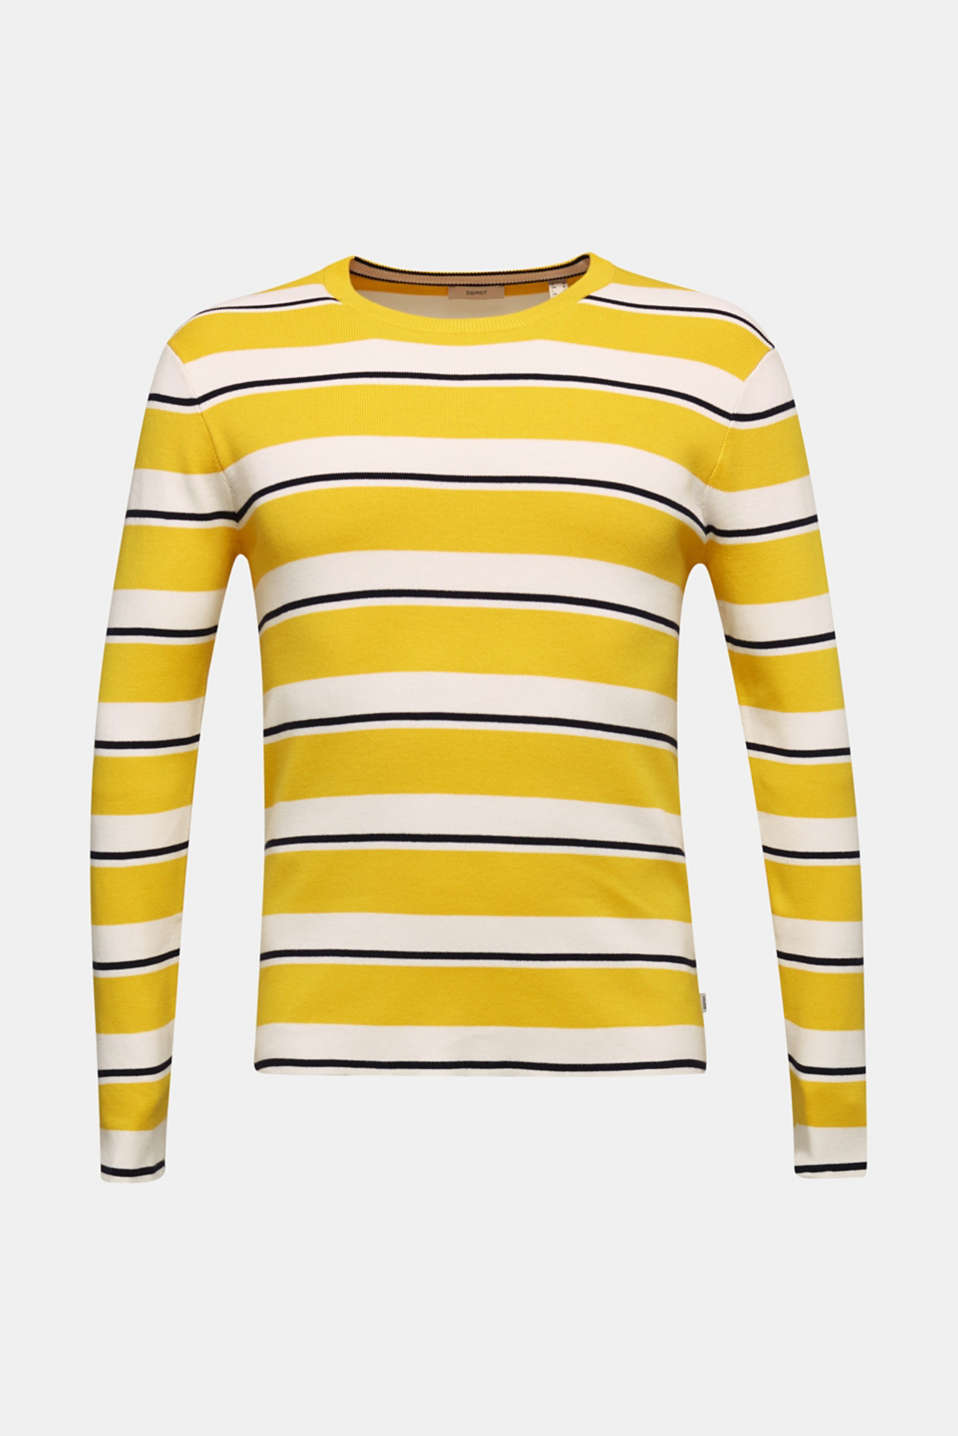 Striped sweatshirt in 100% cotton, YELLOW 3, detail image number 6